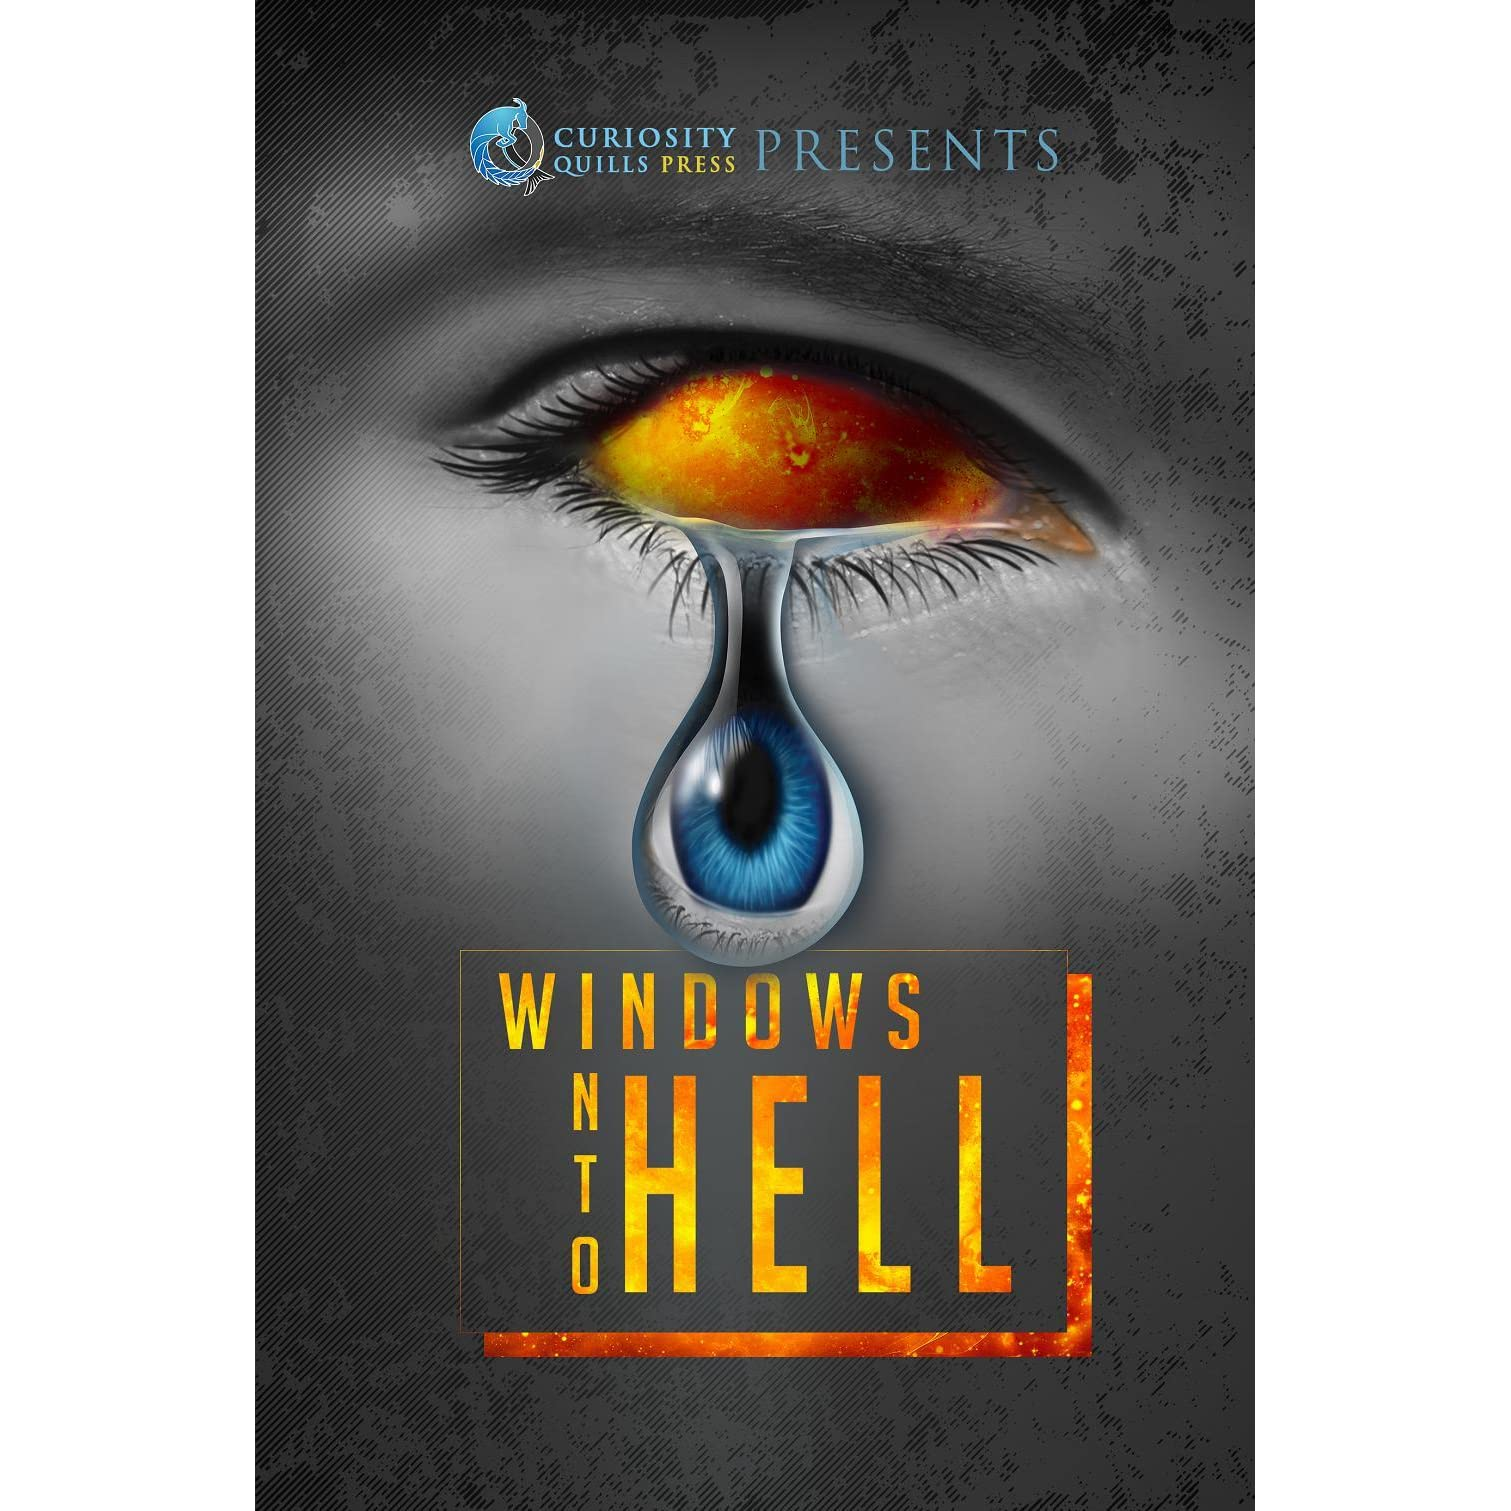 Windows into hell by james wymore reviews discussion for Window quotes goodreads